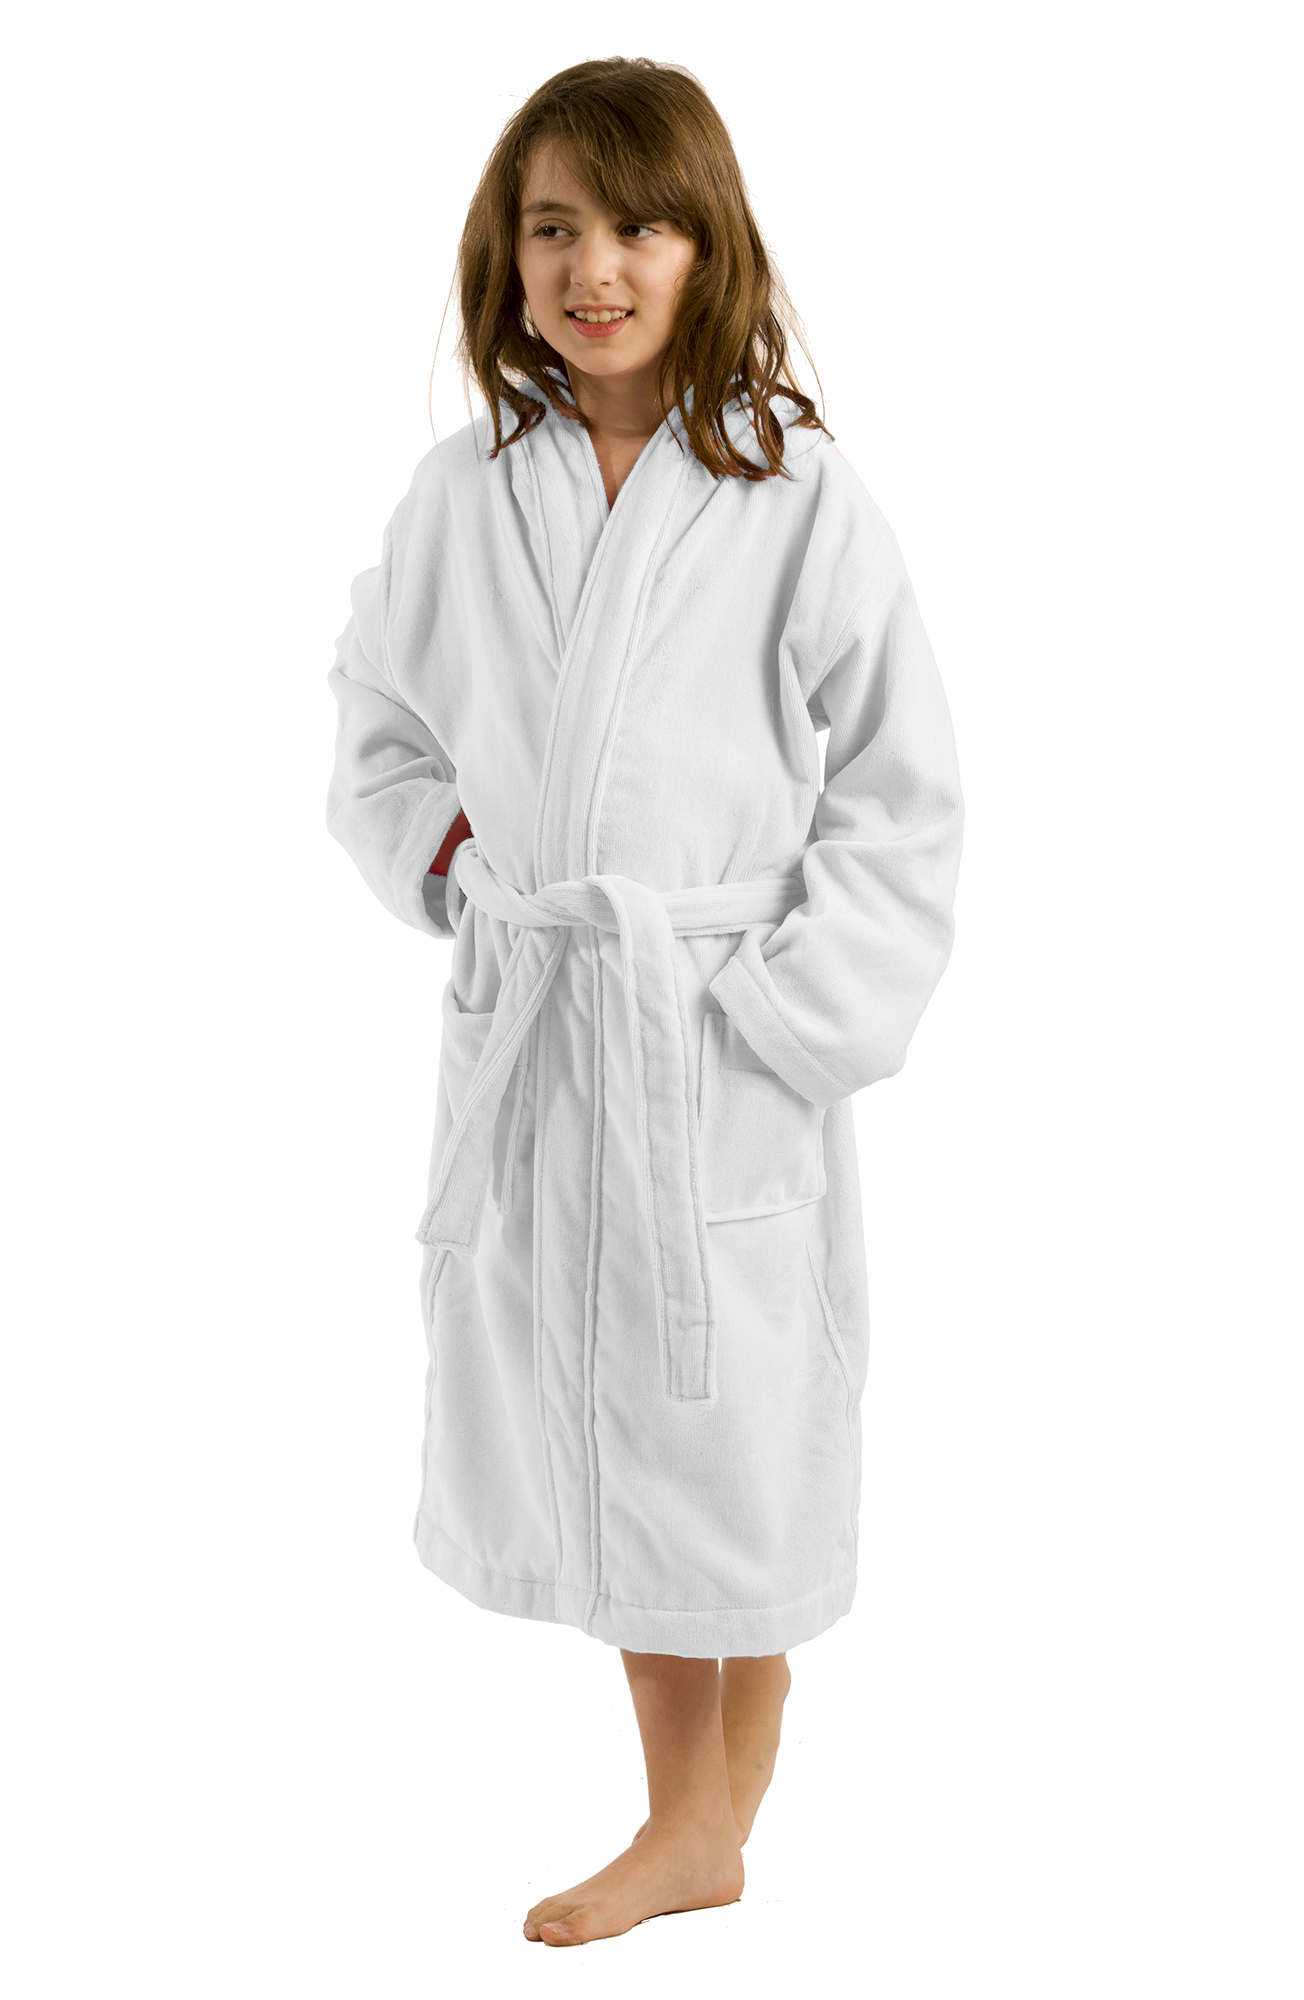 Black Robe BY LORA Terry Hooded Bathrobe for Boys and Teenagers Size Small